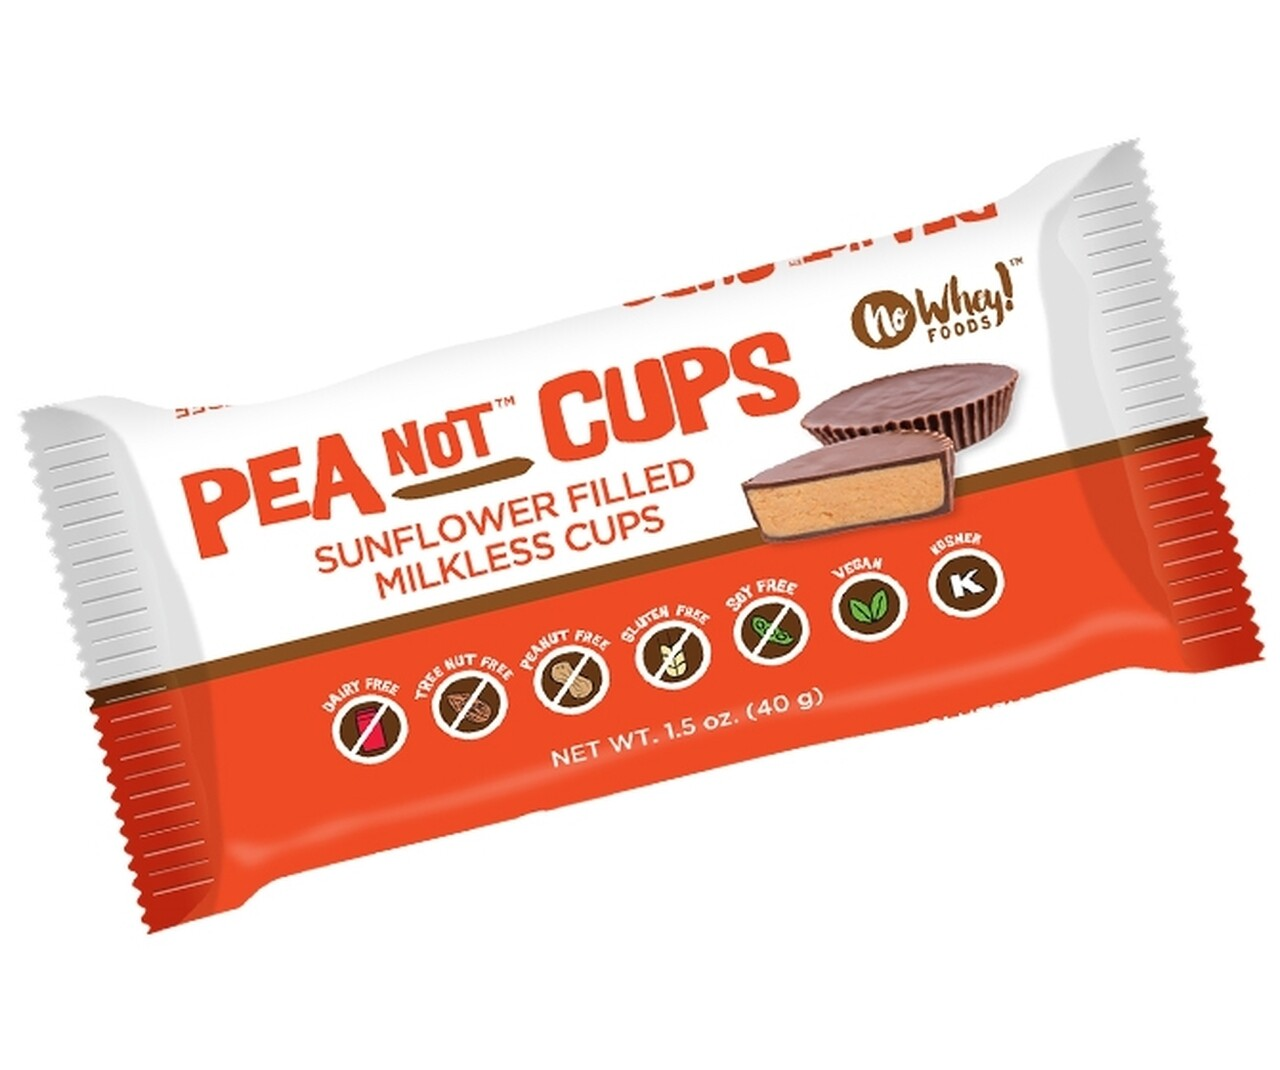 Pea-NOT Butter Cups